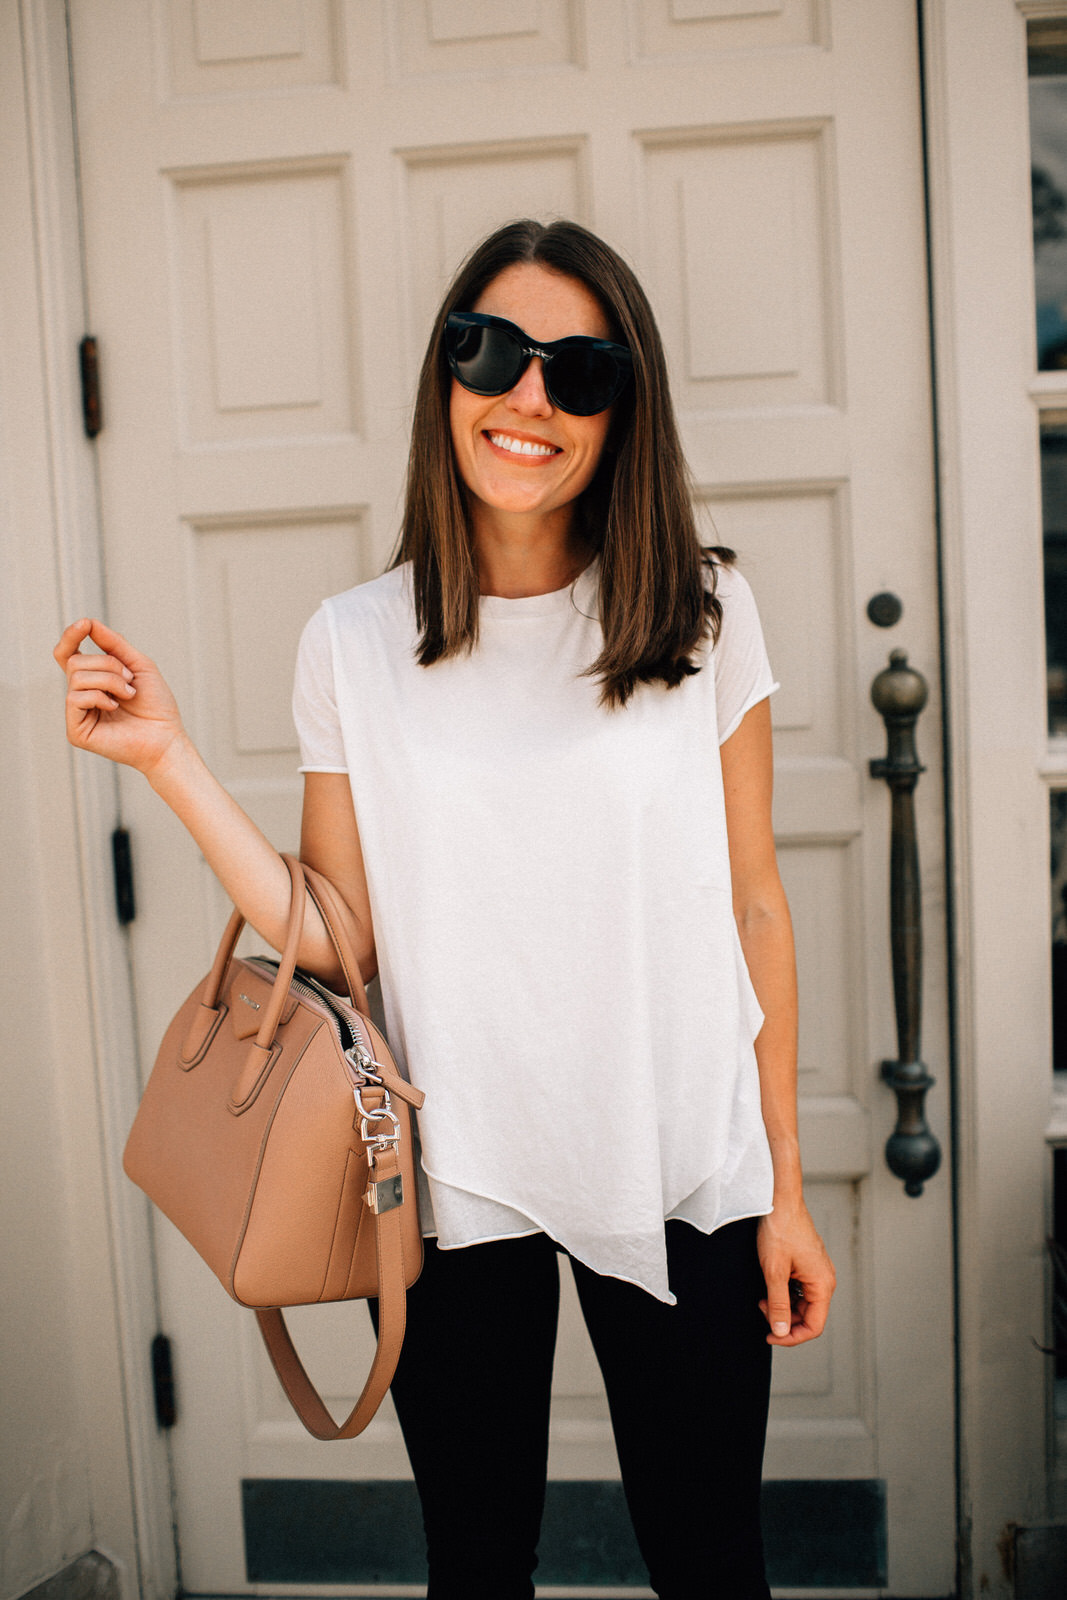 nordstrom anniversary sale outfit allsaints white asymmetrical hem tee with tan givenchy handbag le specs sunglasses